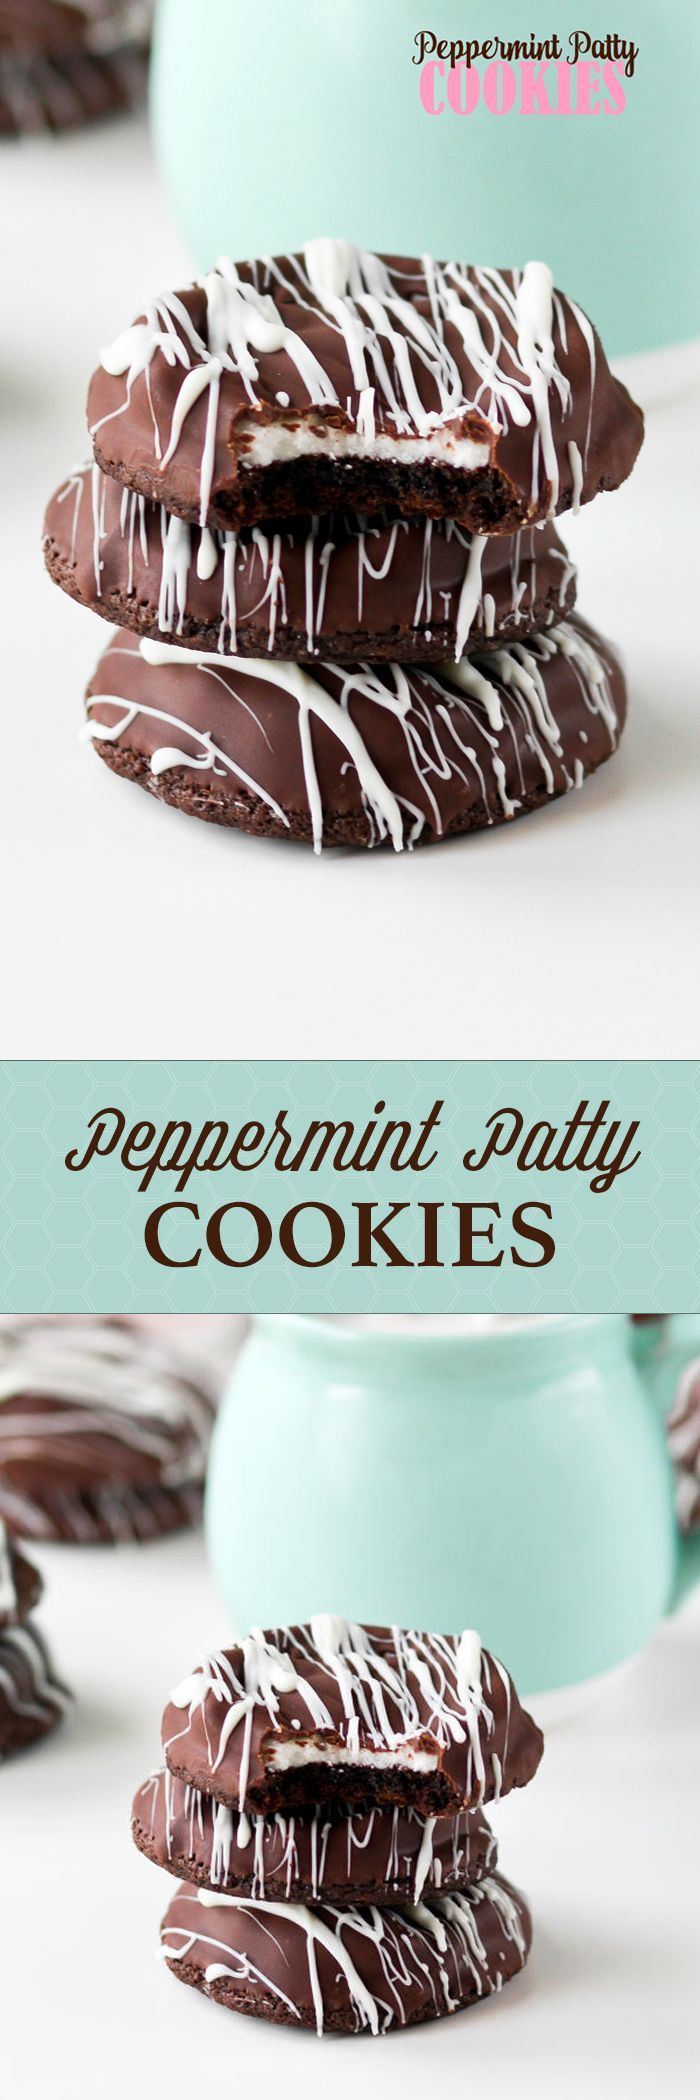 Peppermint Patty Cookies -- love these stashed in the freezer!